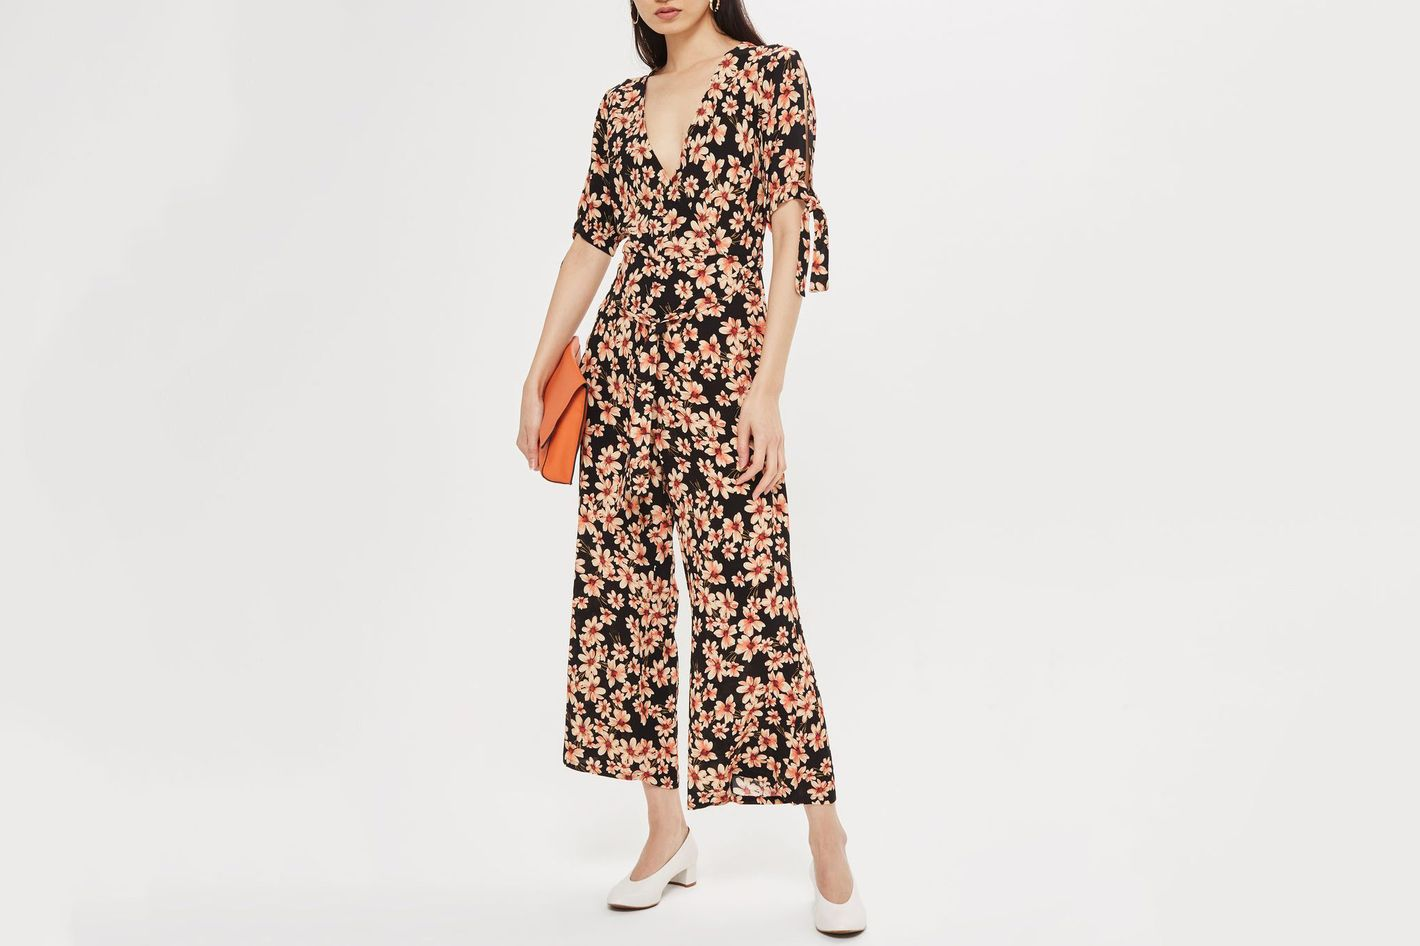 e834cbbf38 15 Dressy Jumpsuits to Wear to a Wedding 2018